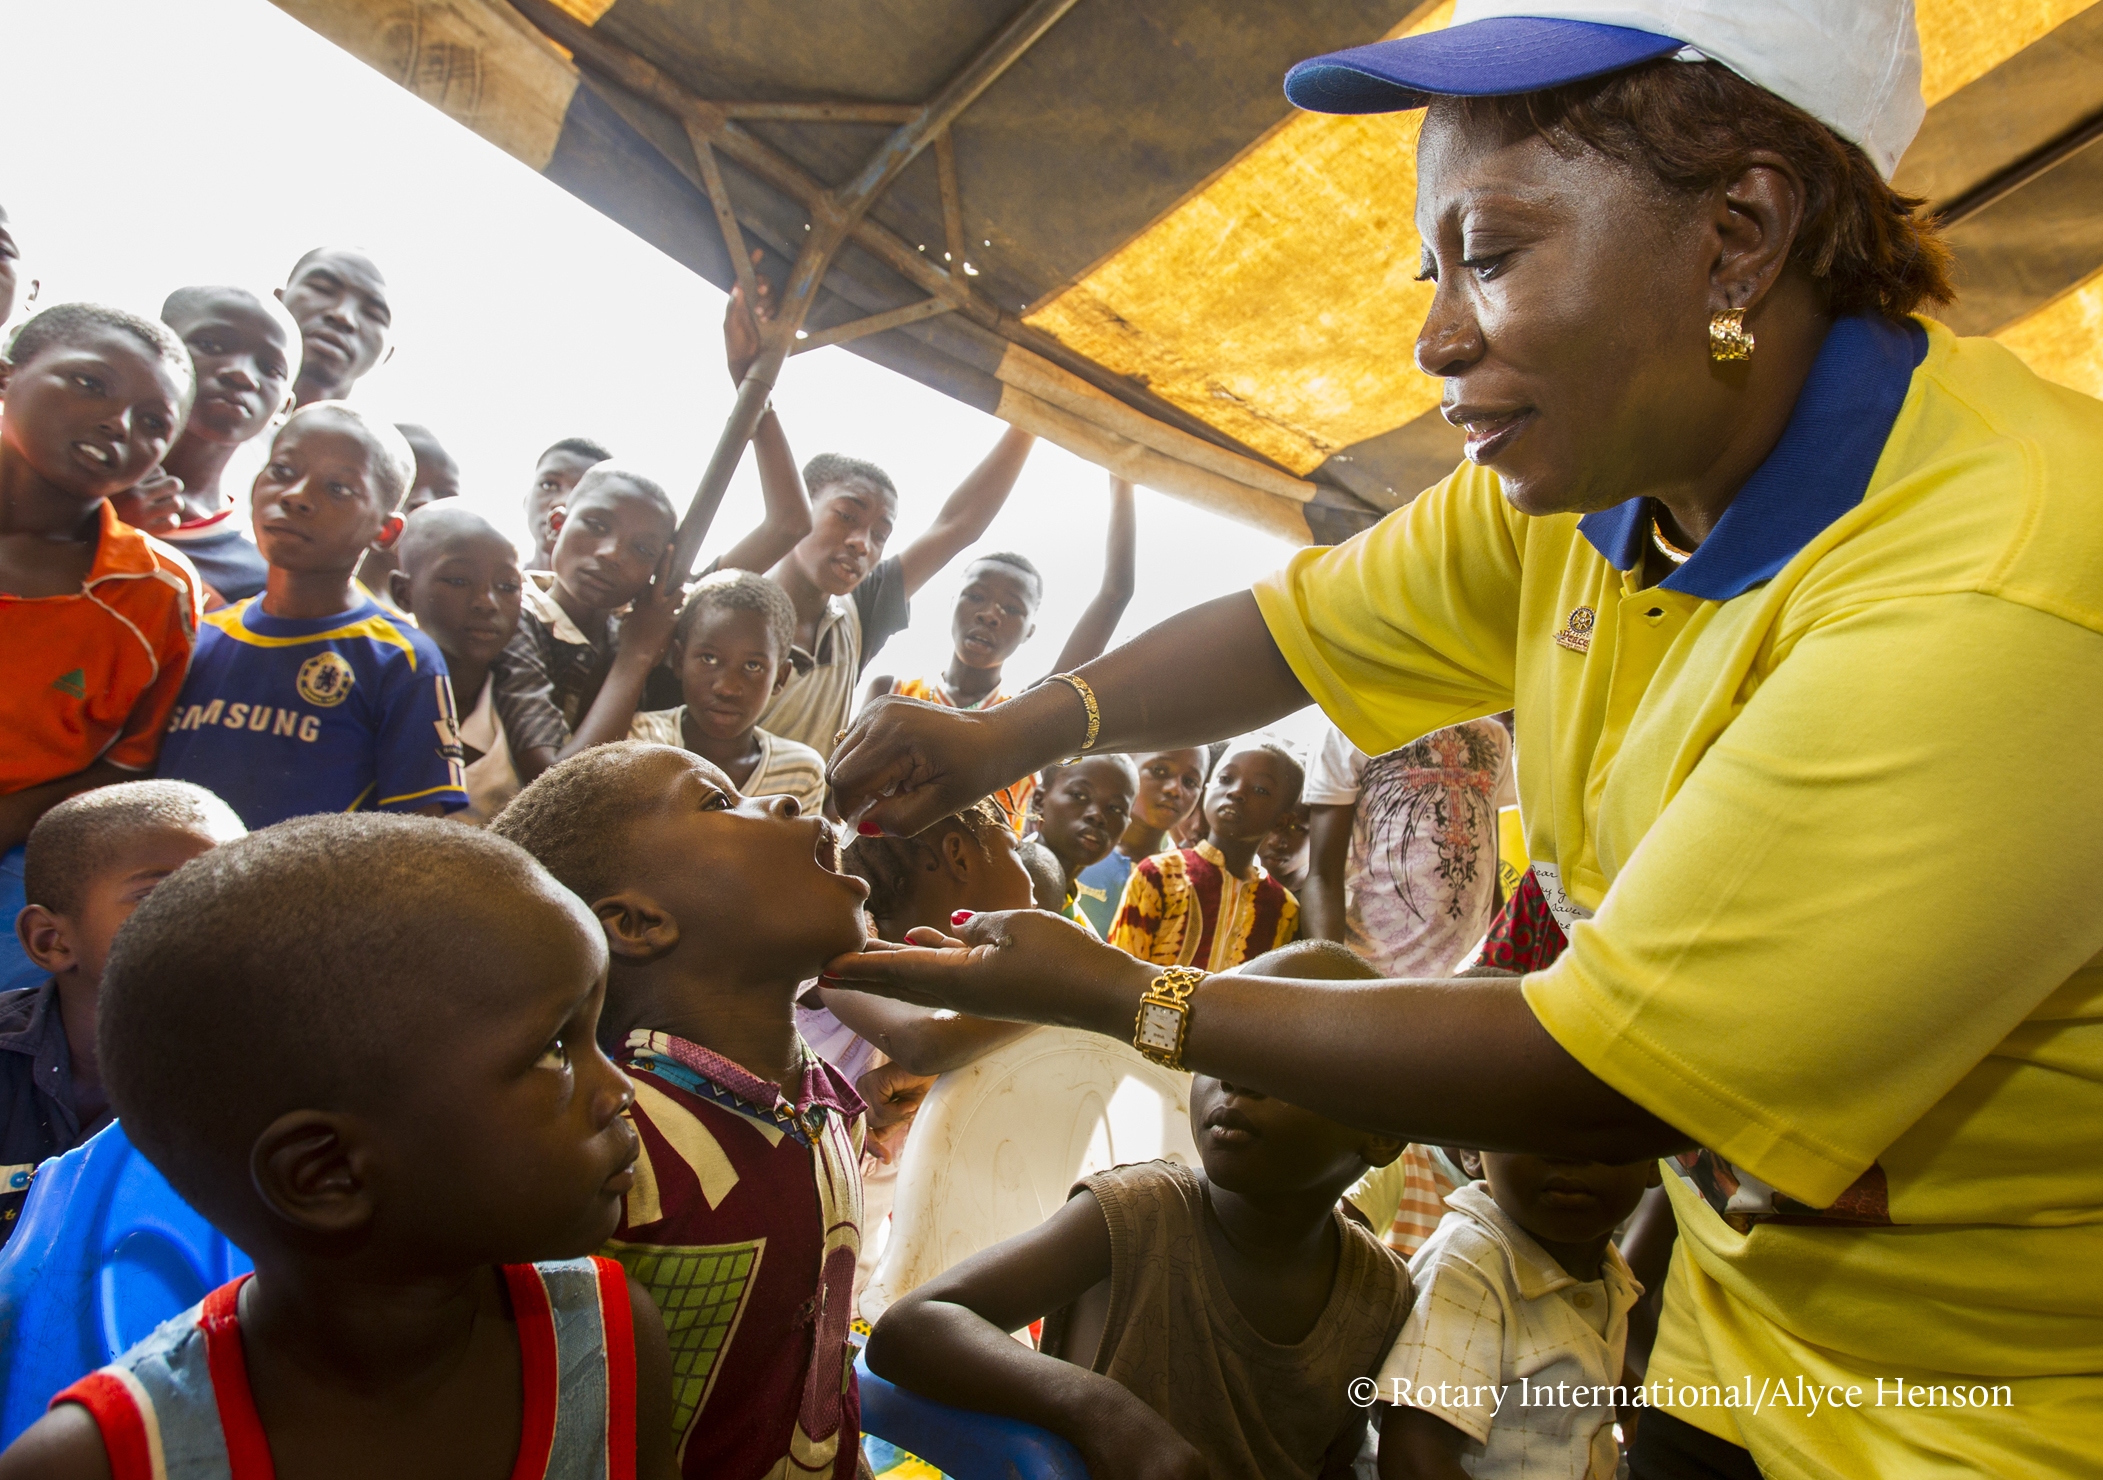 Fighting Disease - Rotary members contributed more than $1.2 billion, to help immunize more than 2 billion children in 122 countries.